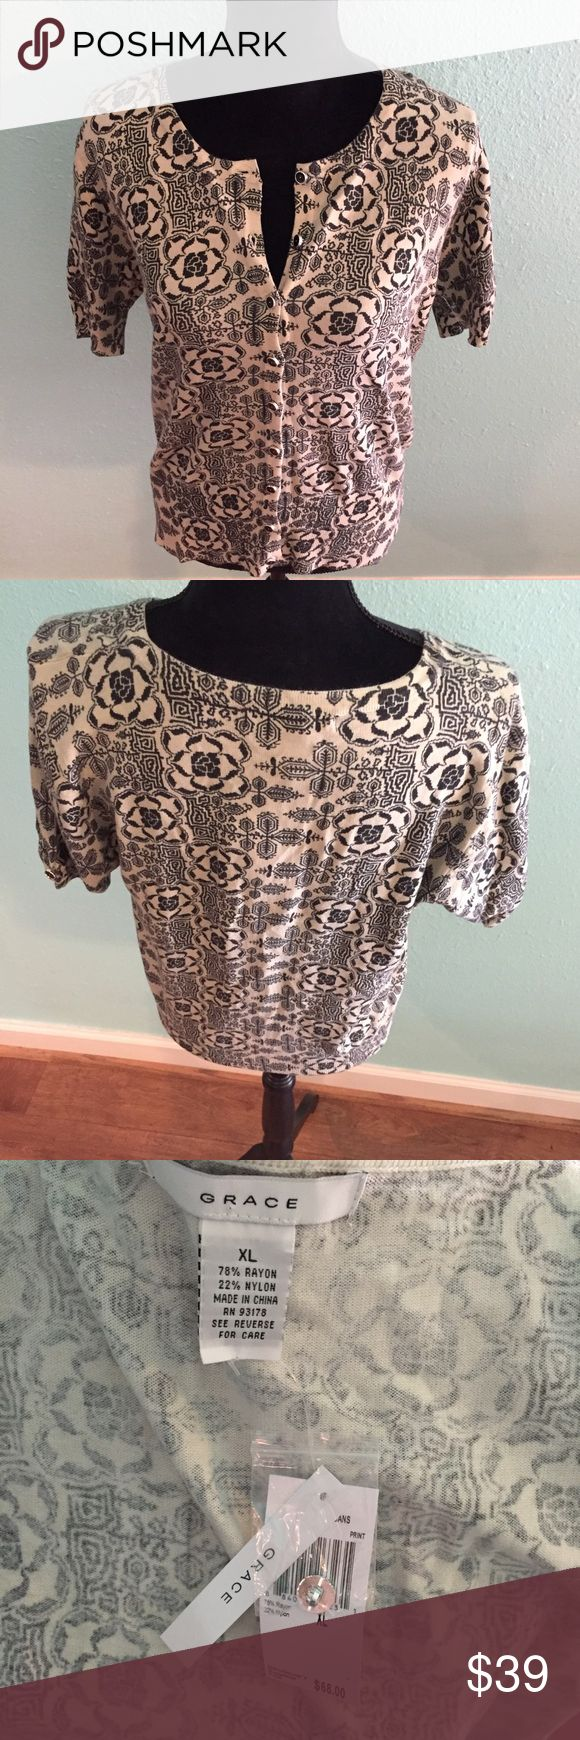 NWT Grace Short Sleeve Tribal Print Cardigan Super cute short sleeved cardi for any season! Cream colored with fun tribal print. NWT.  Size XL Grace Sweaters Cardigans